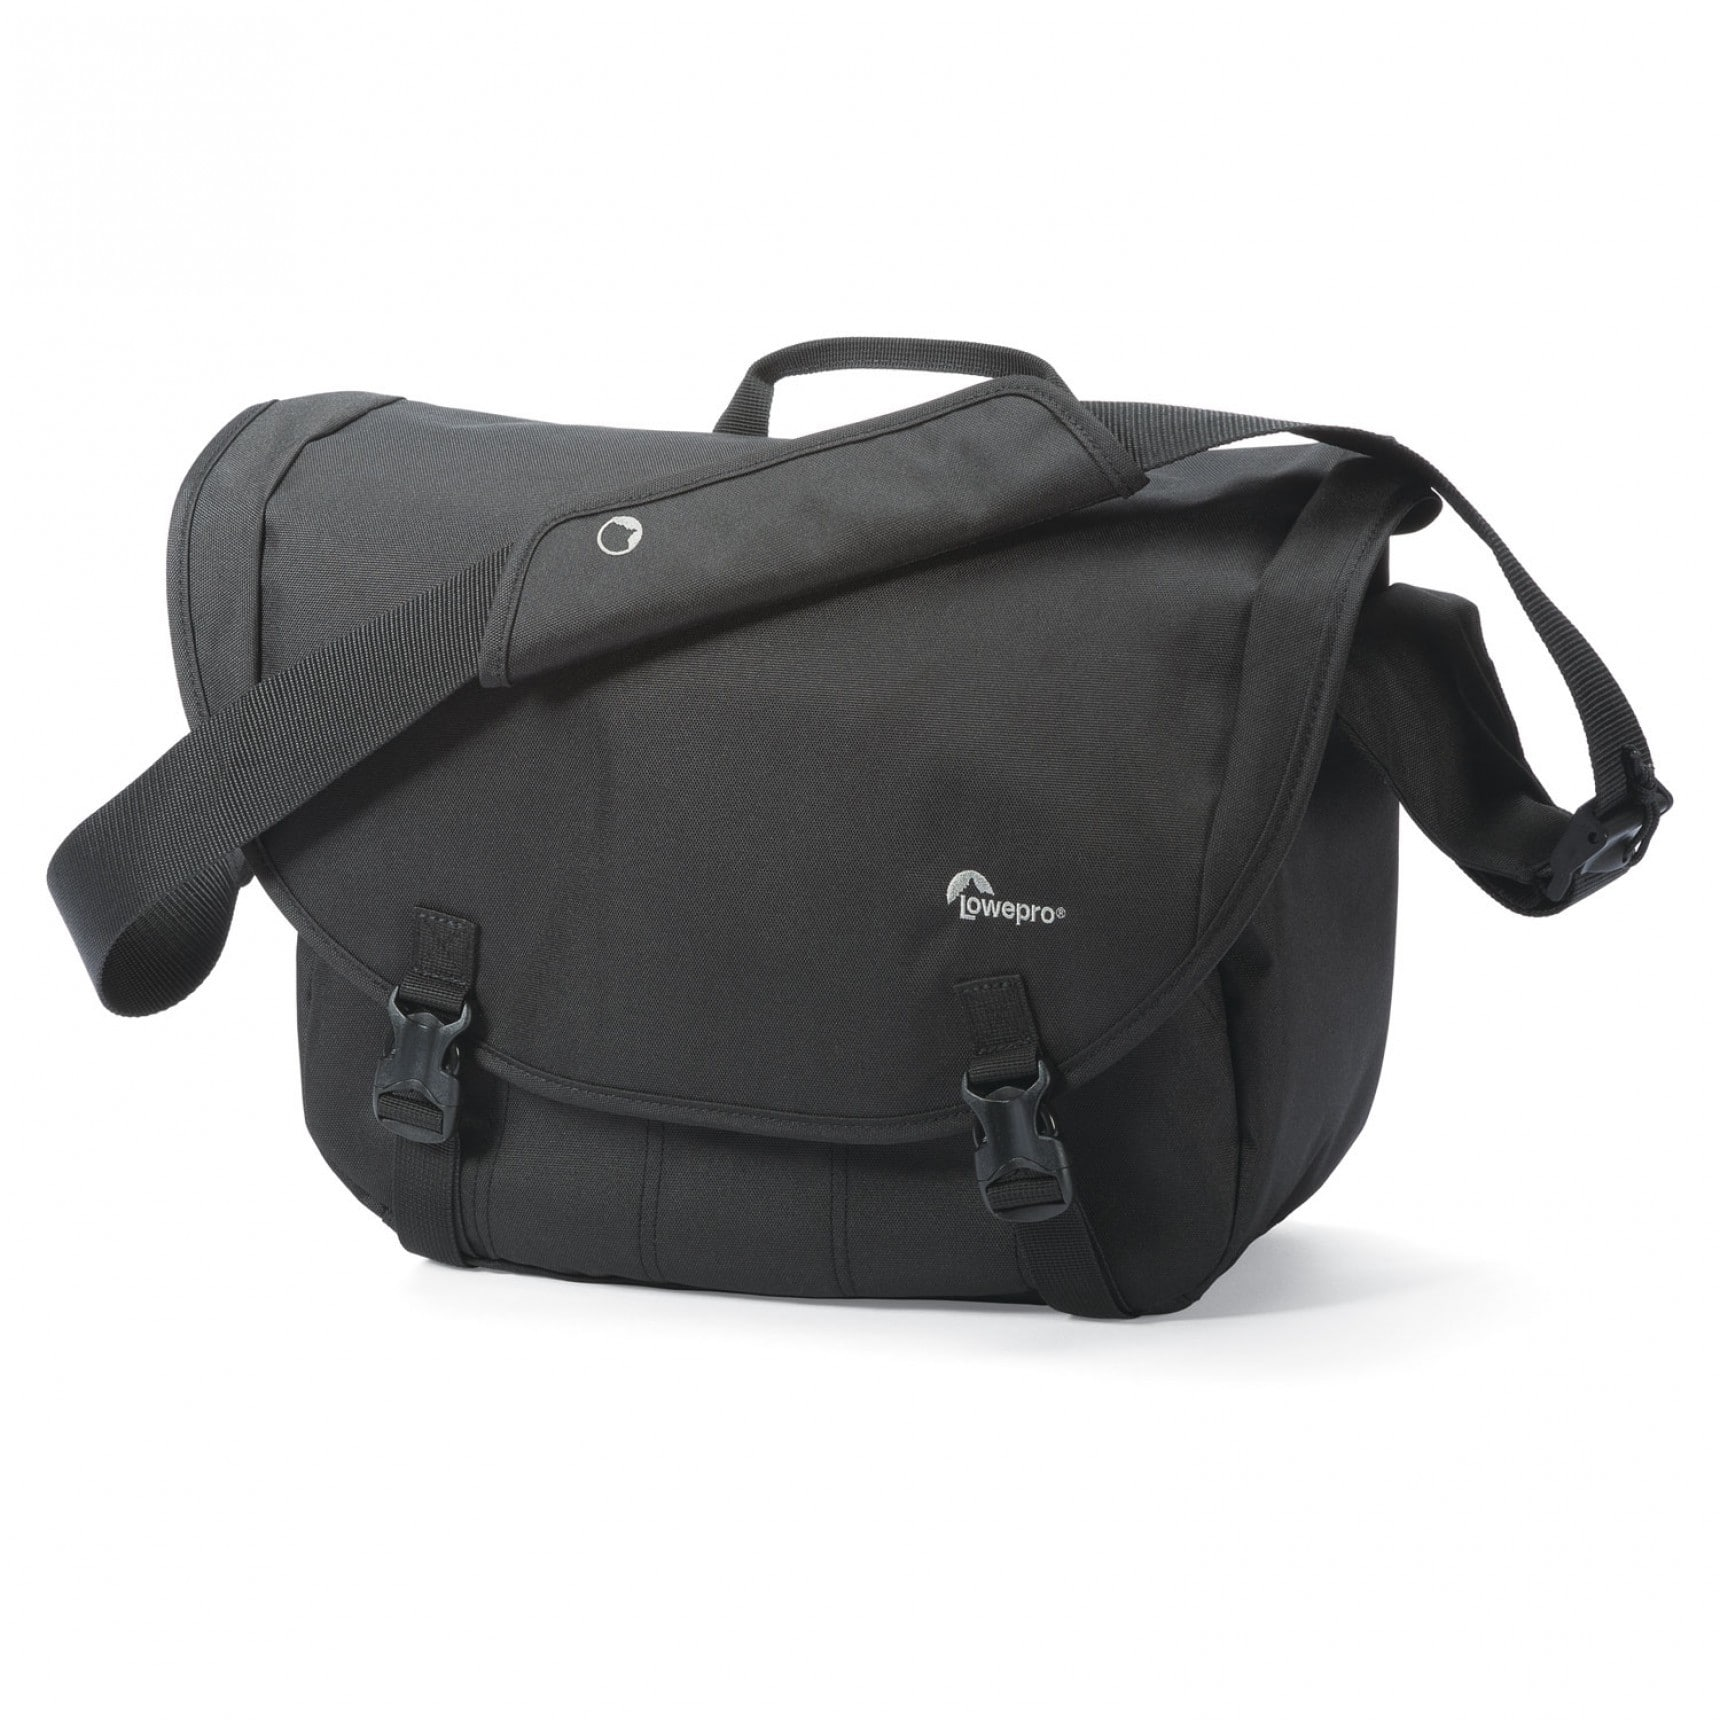 LowePro Passport Messenger Bag (Black or Grey) $19.99 + Free Shipping via Ritz Camera